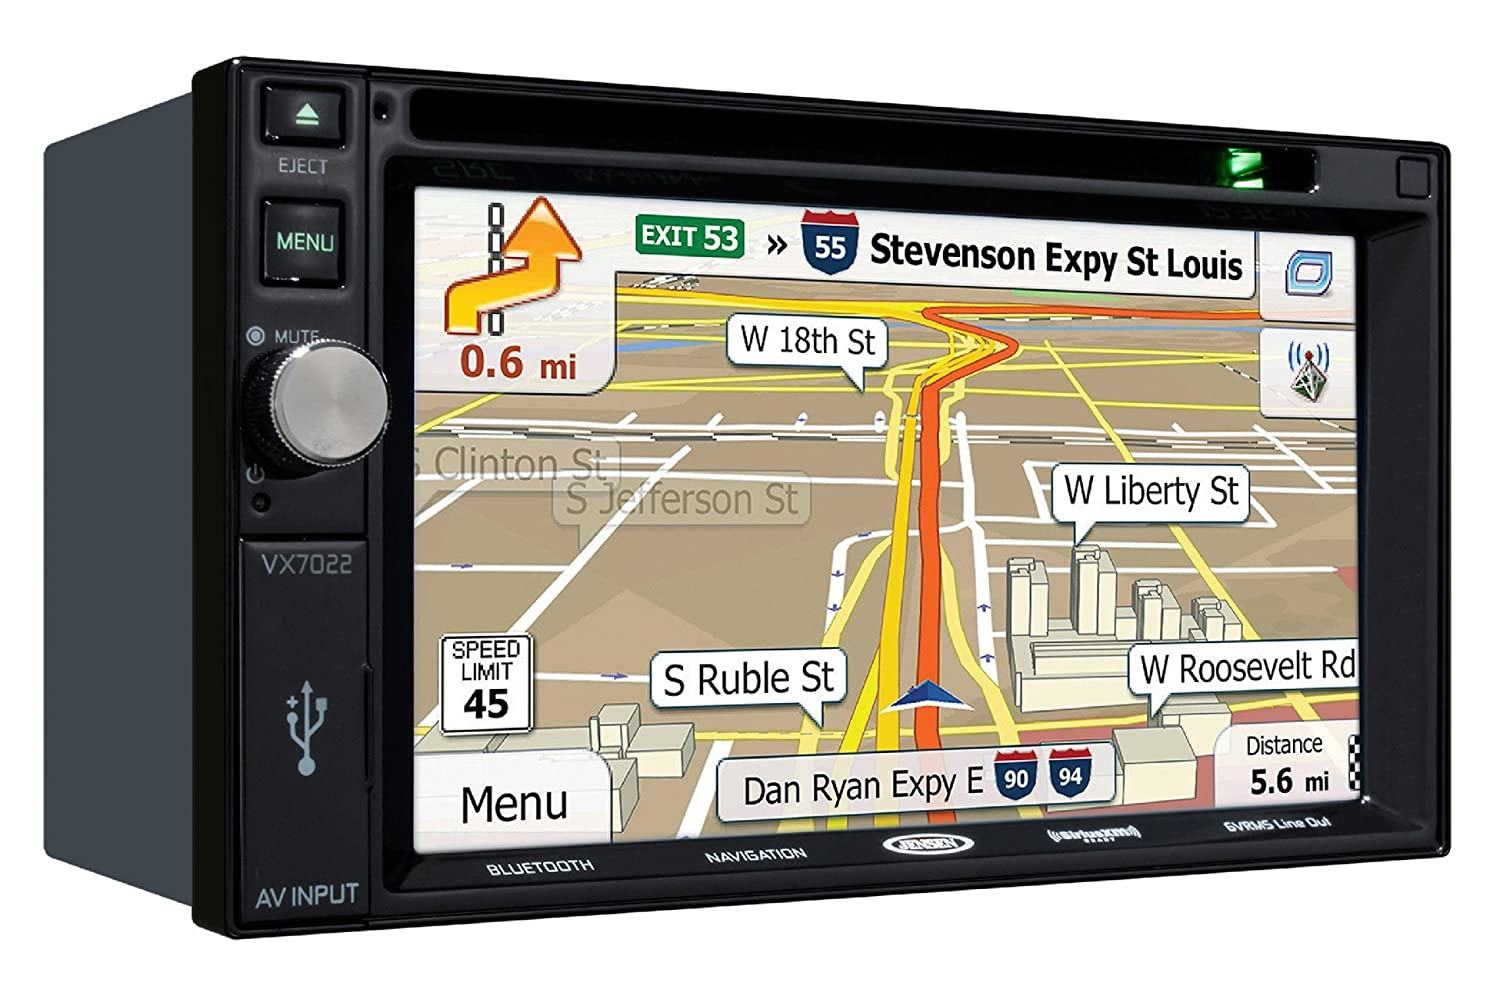 Best in dash navigation-Jensen vx7022